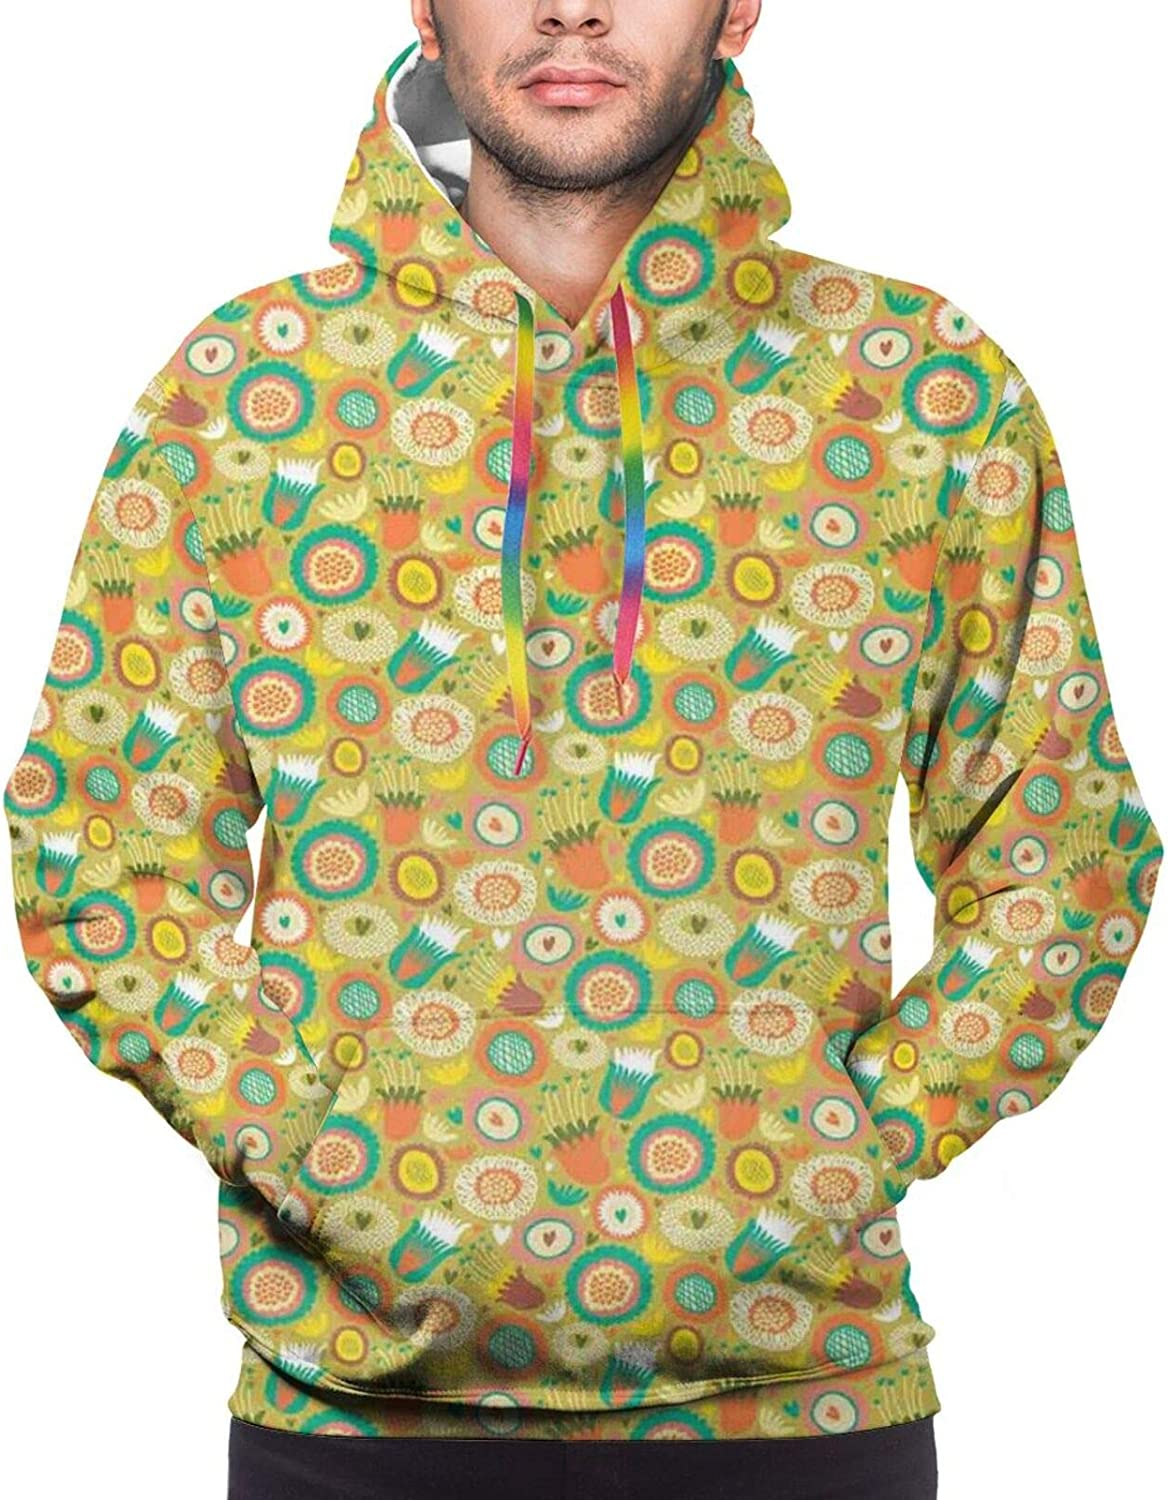 TENJONE Men's Hoodies Sweatshirts,Botanical Pattern with Circles Triangles and Hearts Green Leaves Blooming Daisies